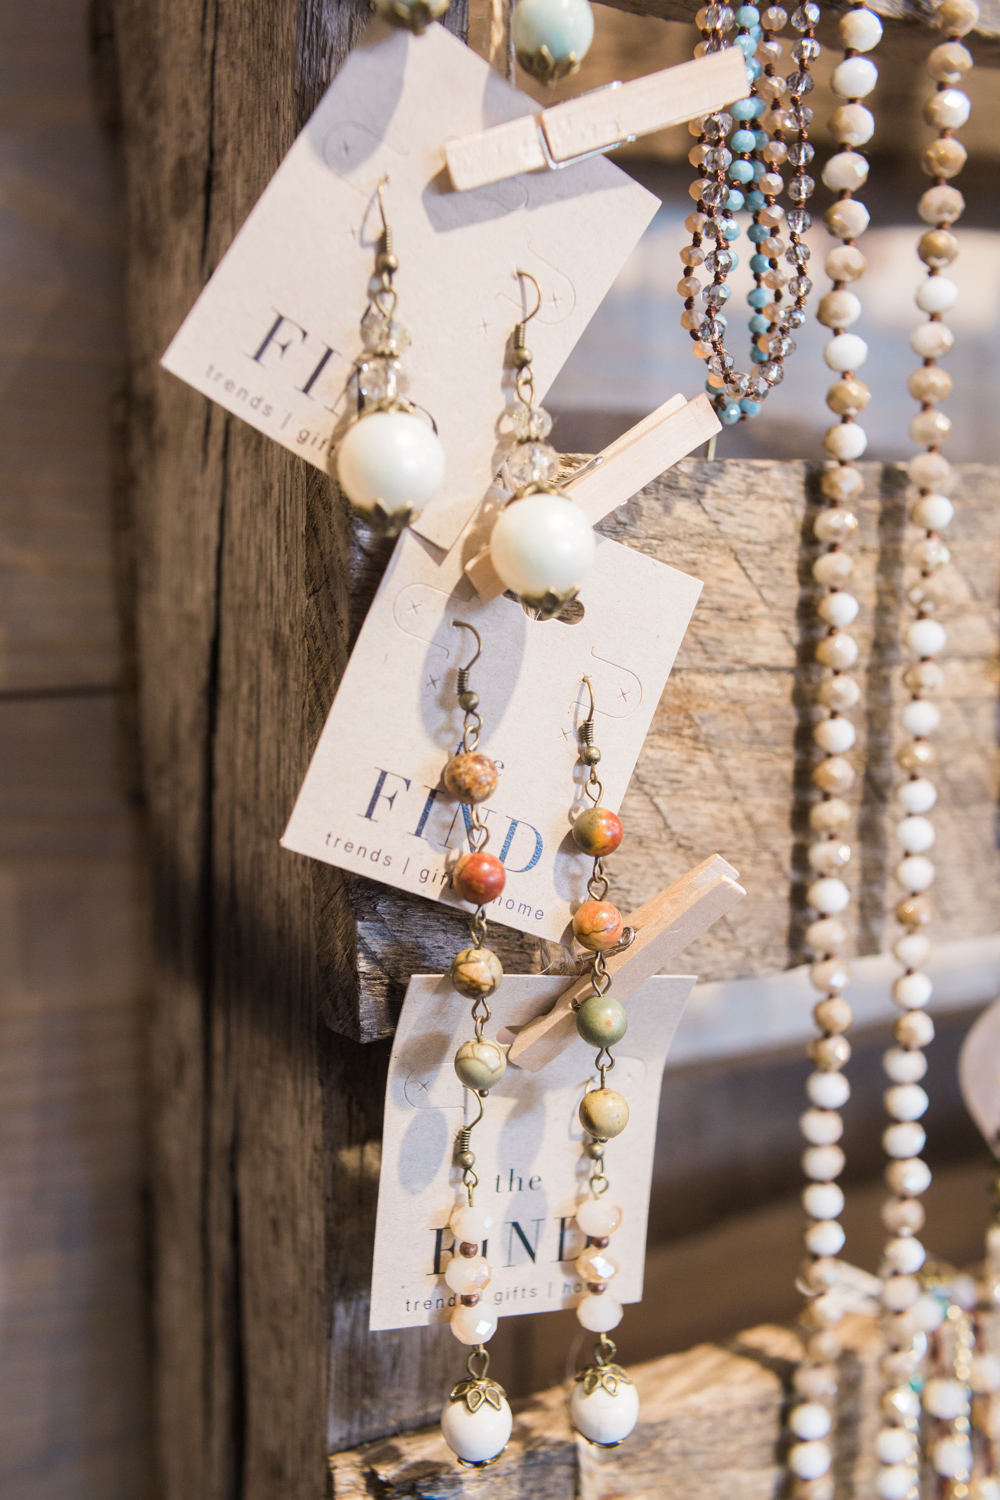 THE FIND BOUTIQUE WIMBERLEY TEXAS-85.jpg